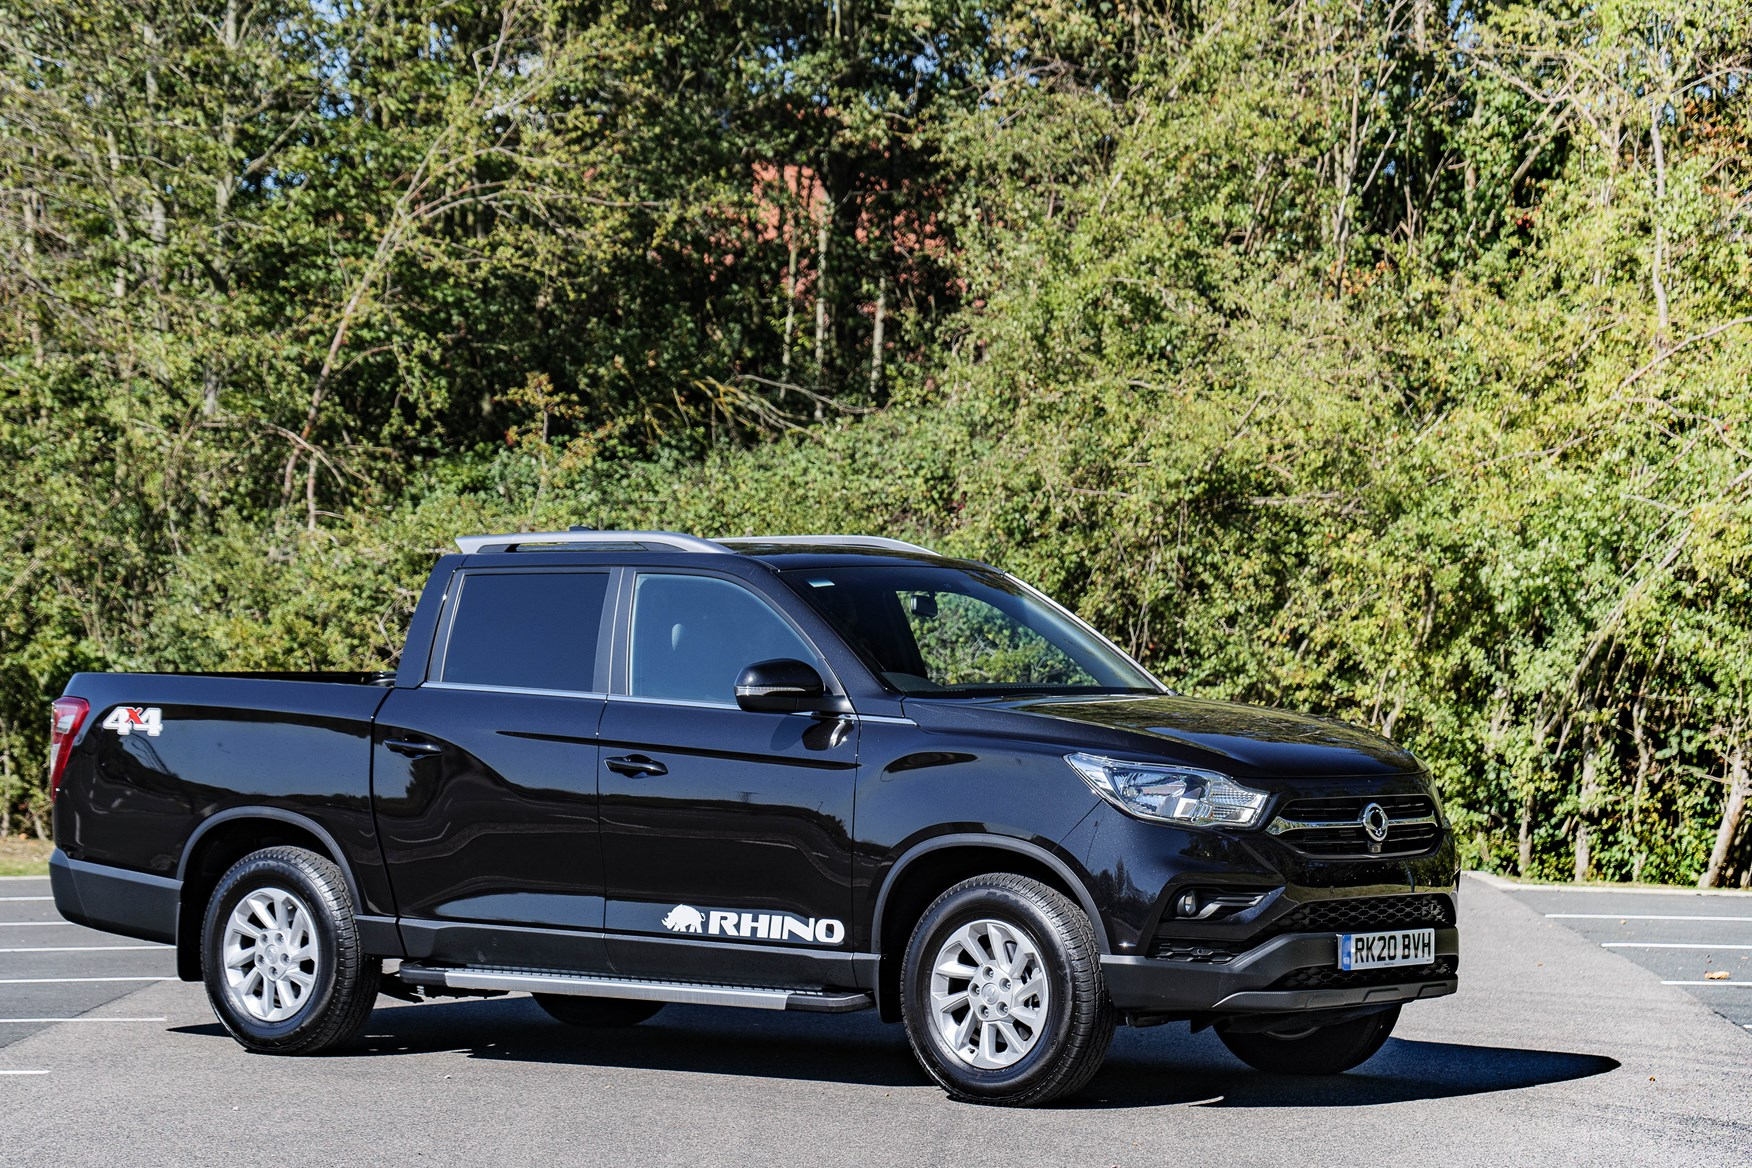 SsangYong Musso review, Rhino LWB, 2020, black